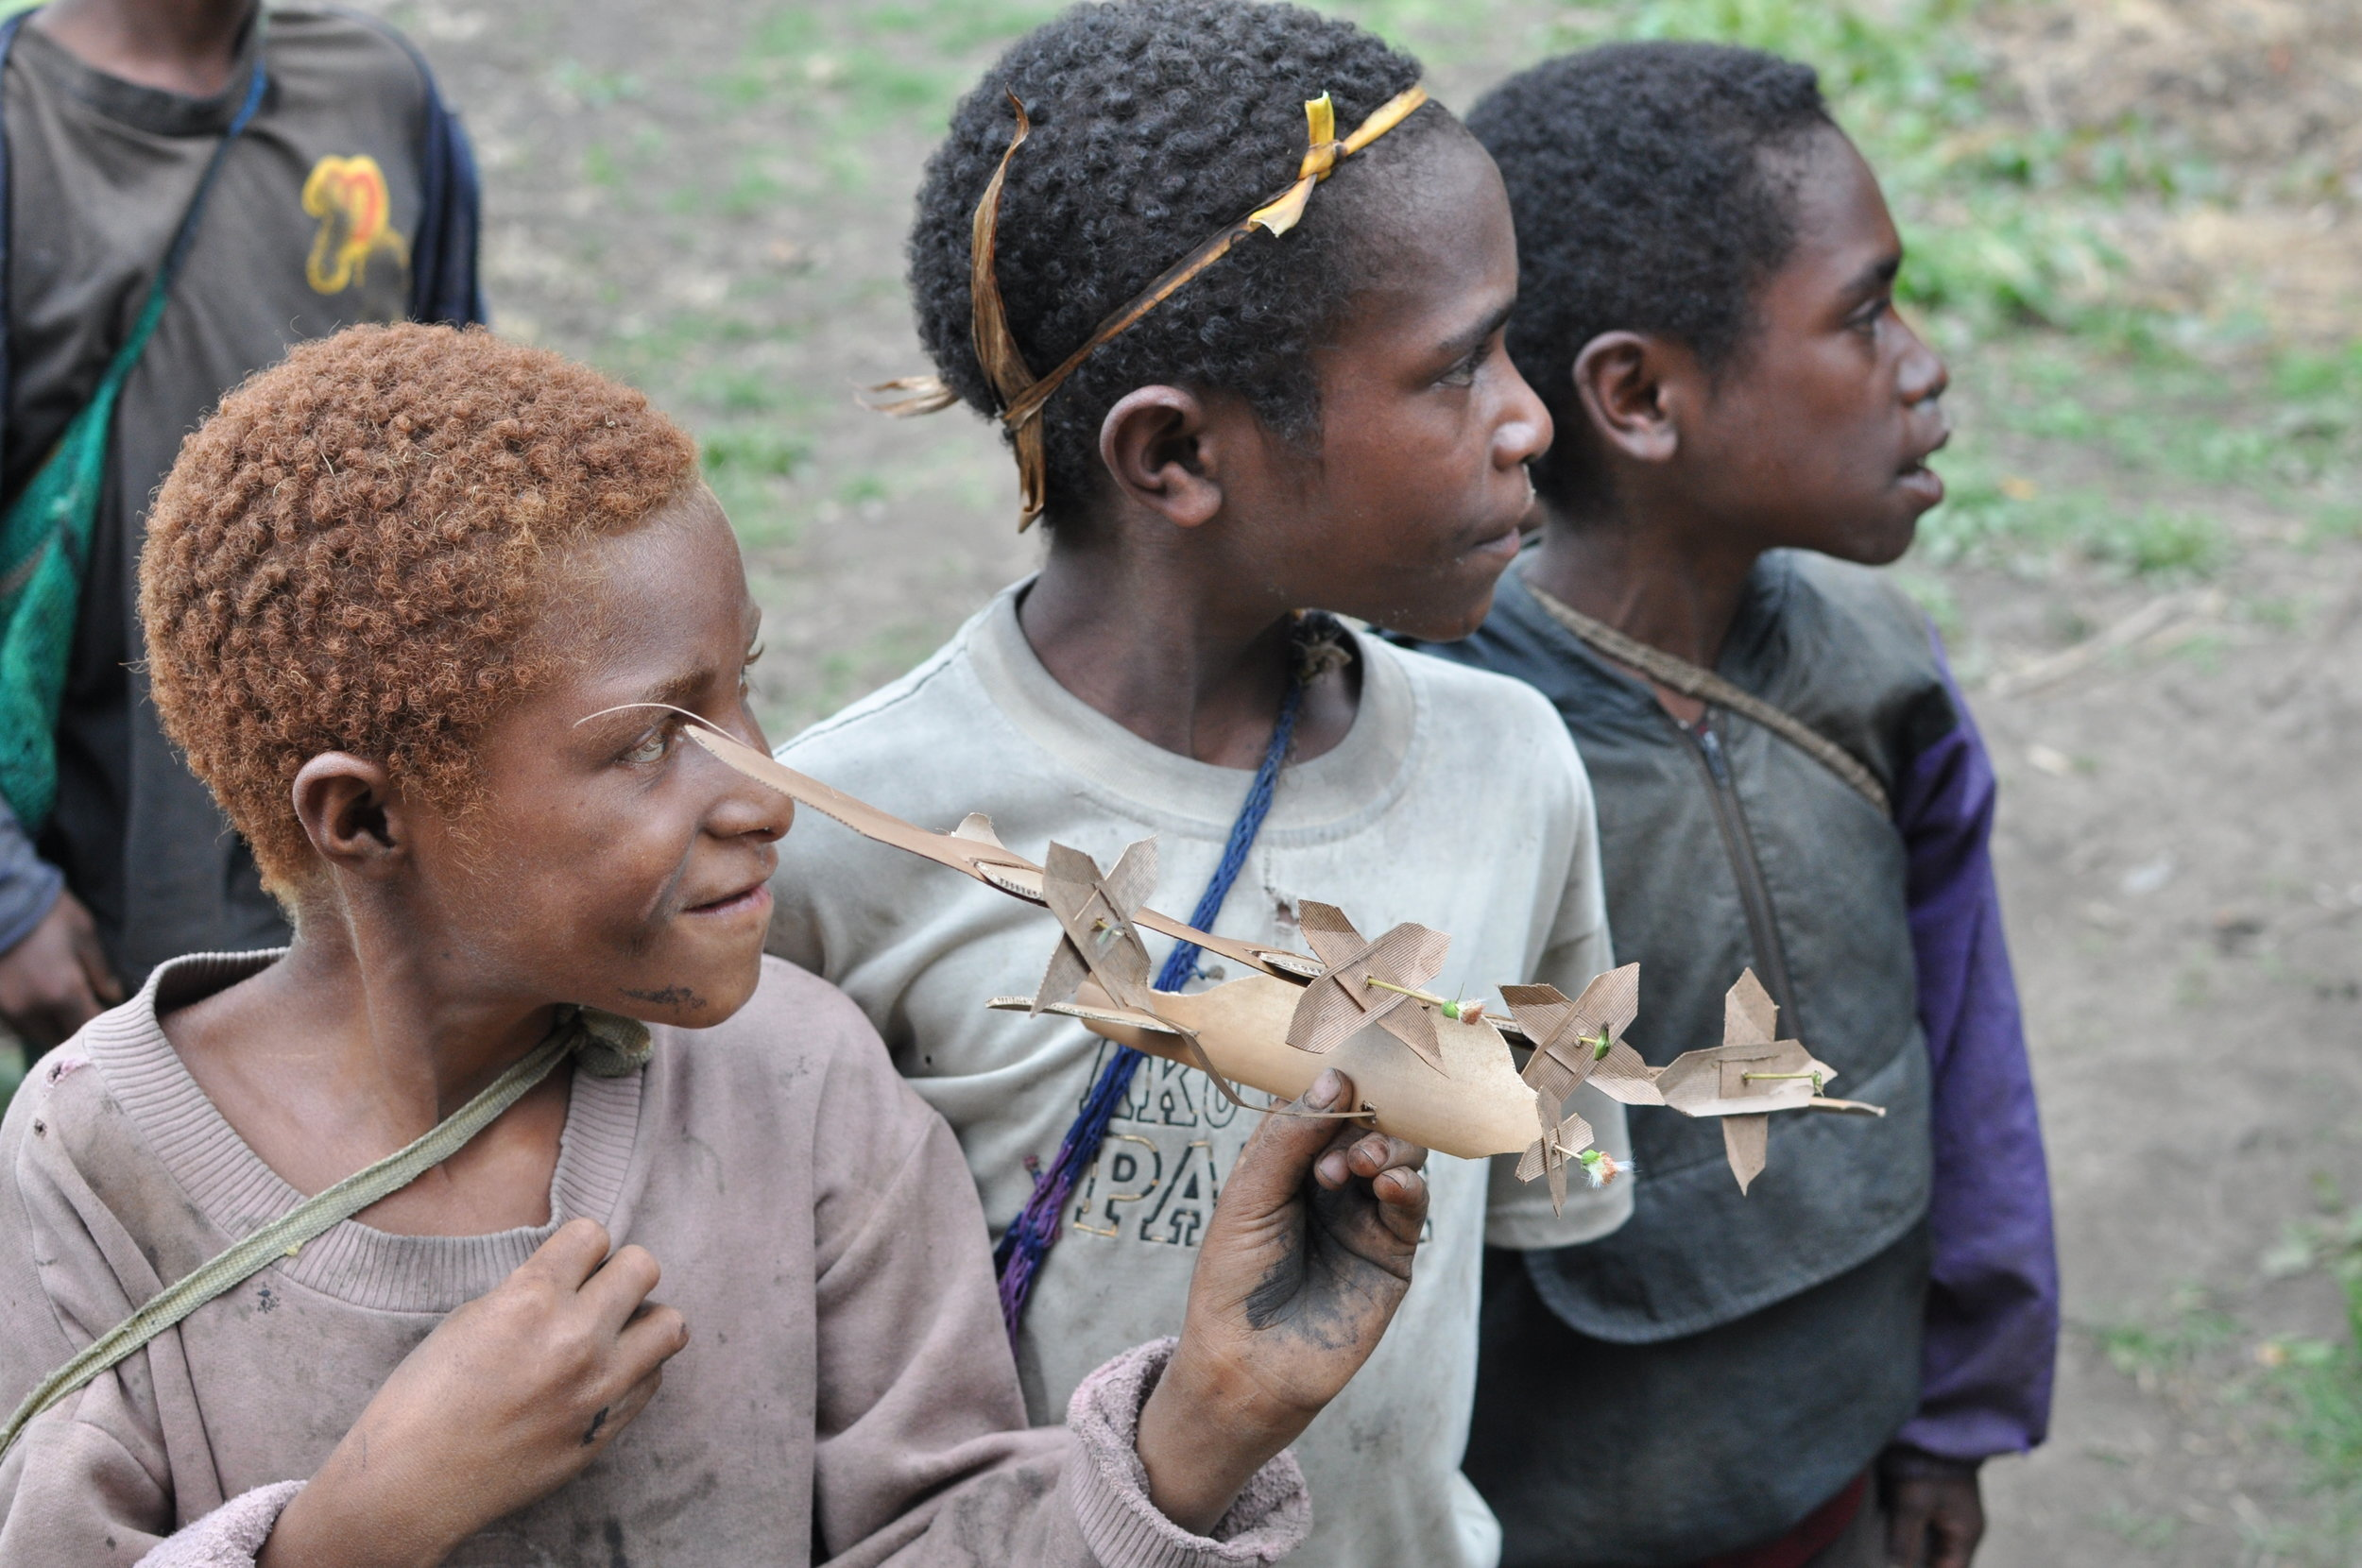 Boys with a home-made model airplane. Gua, 2009.